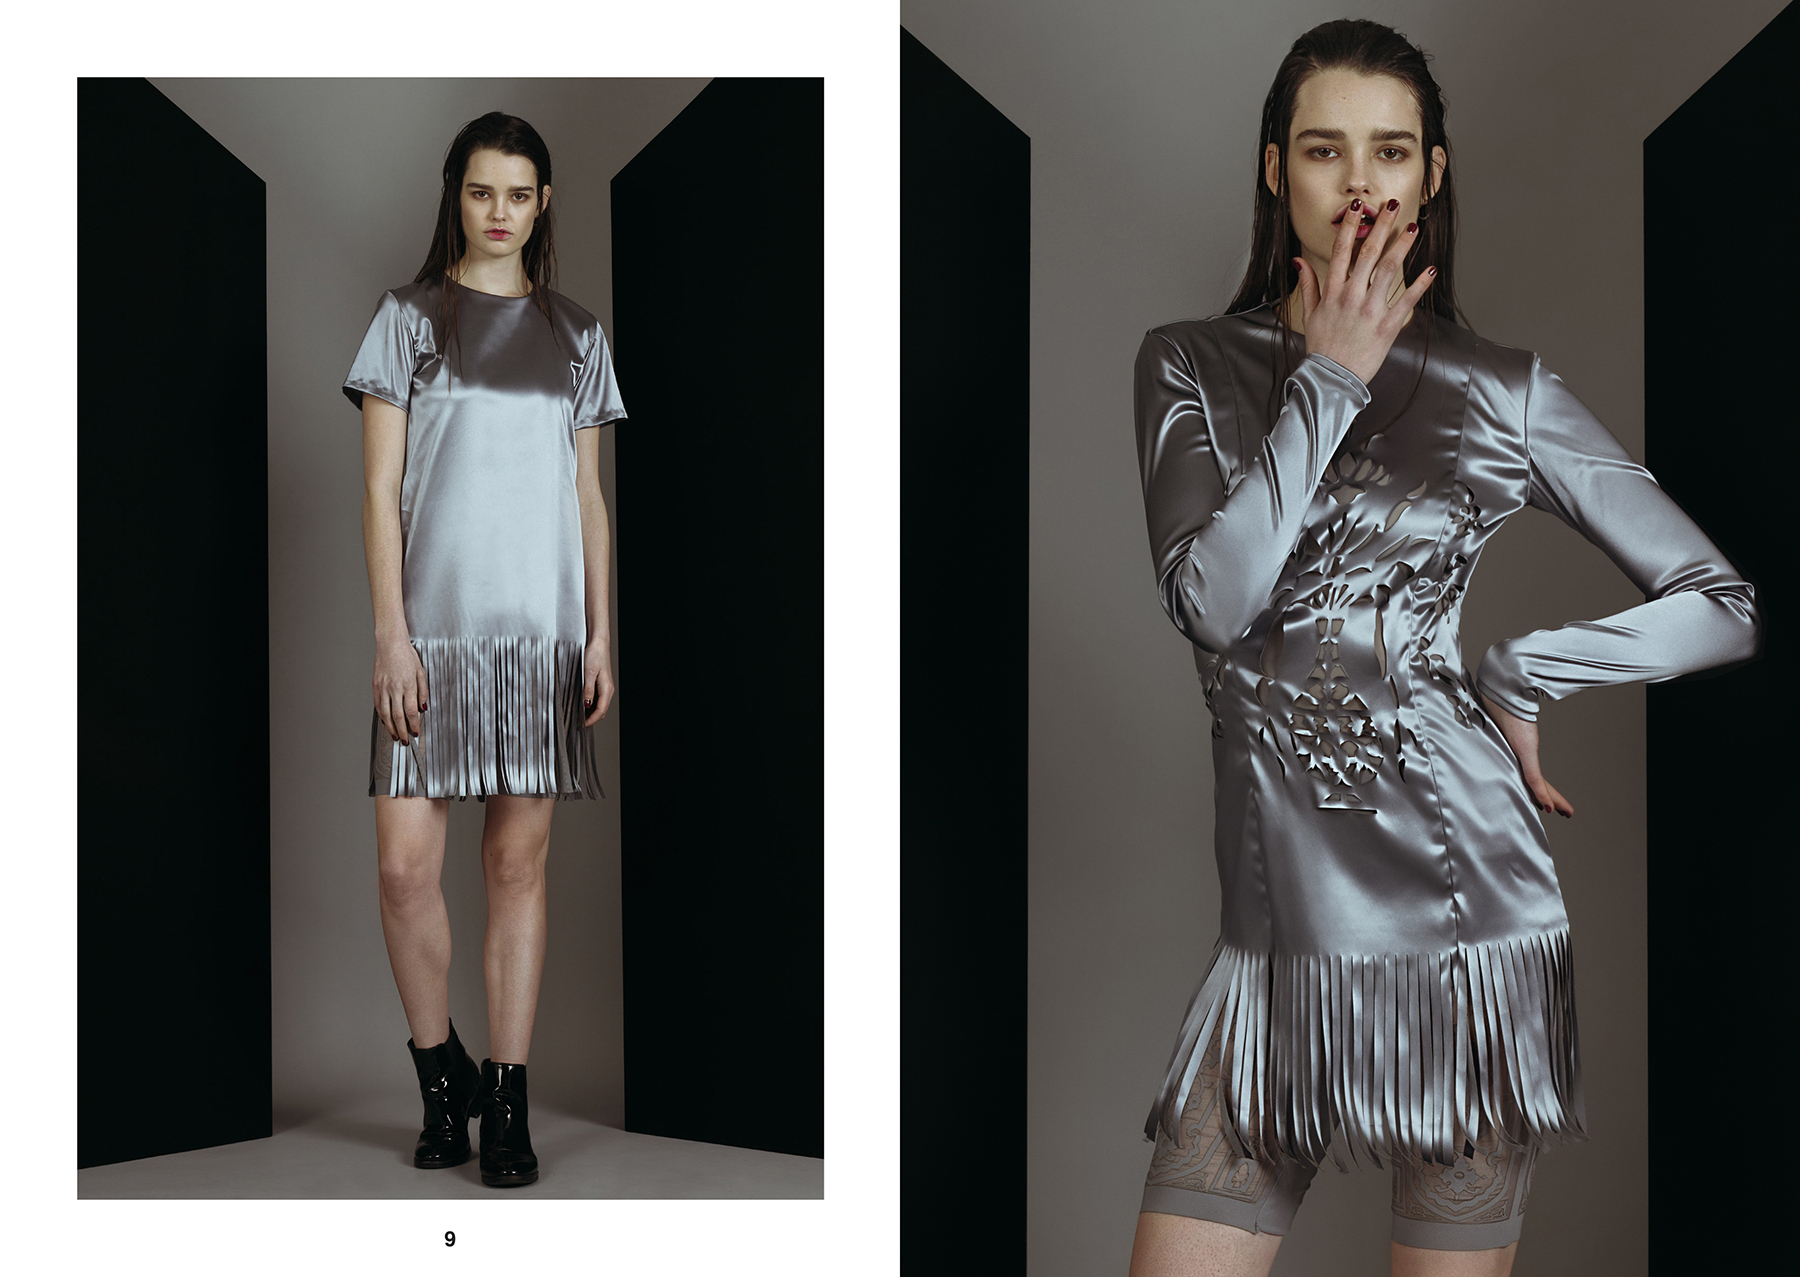 aw15_lookbook_digital_HIRES-6